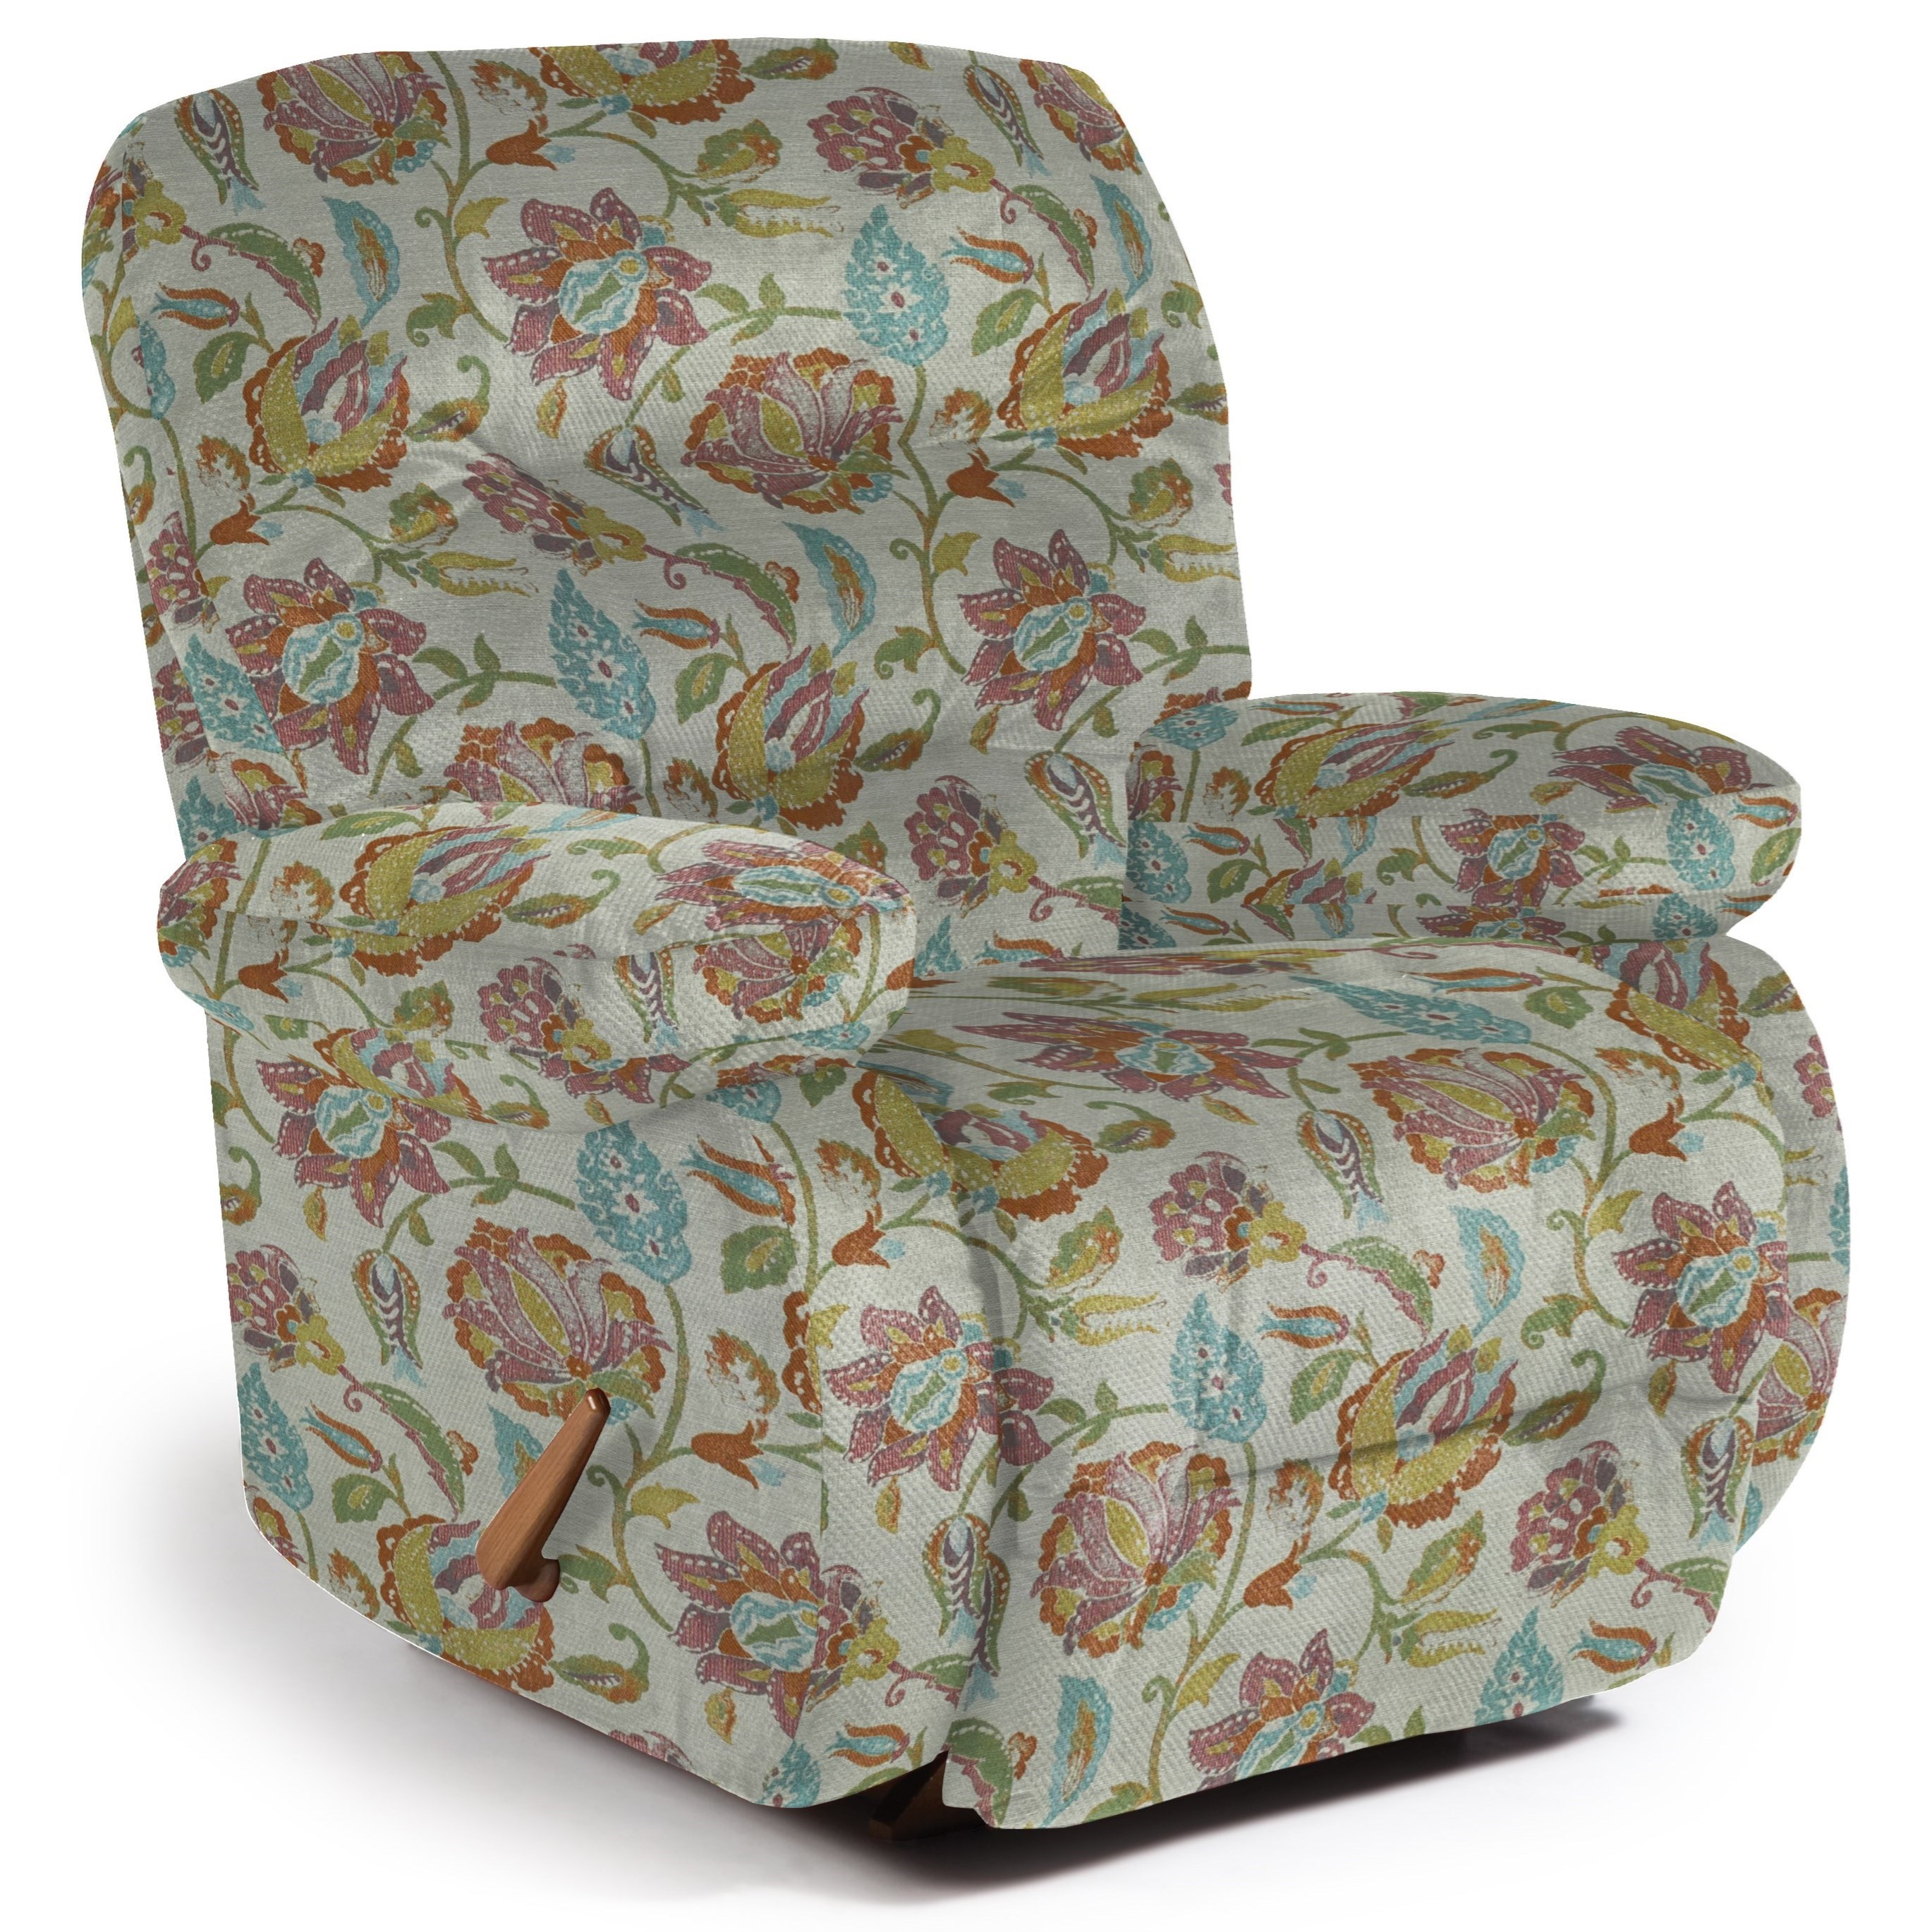 Medium Recliners Maddox Rocker Recliner by Best Home Furnishings at Lapeer Furniture & Mattress Center